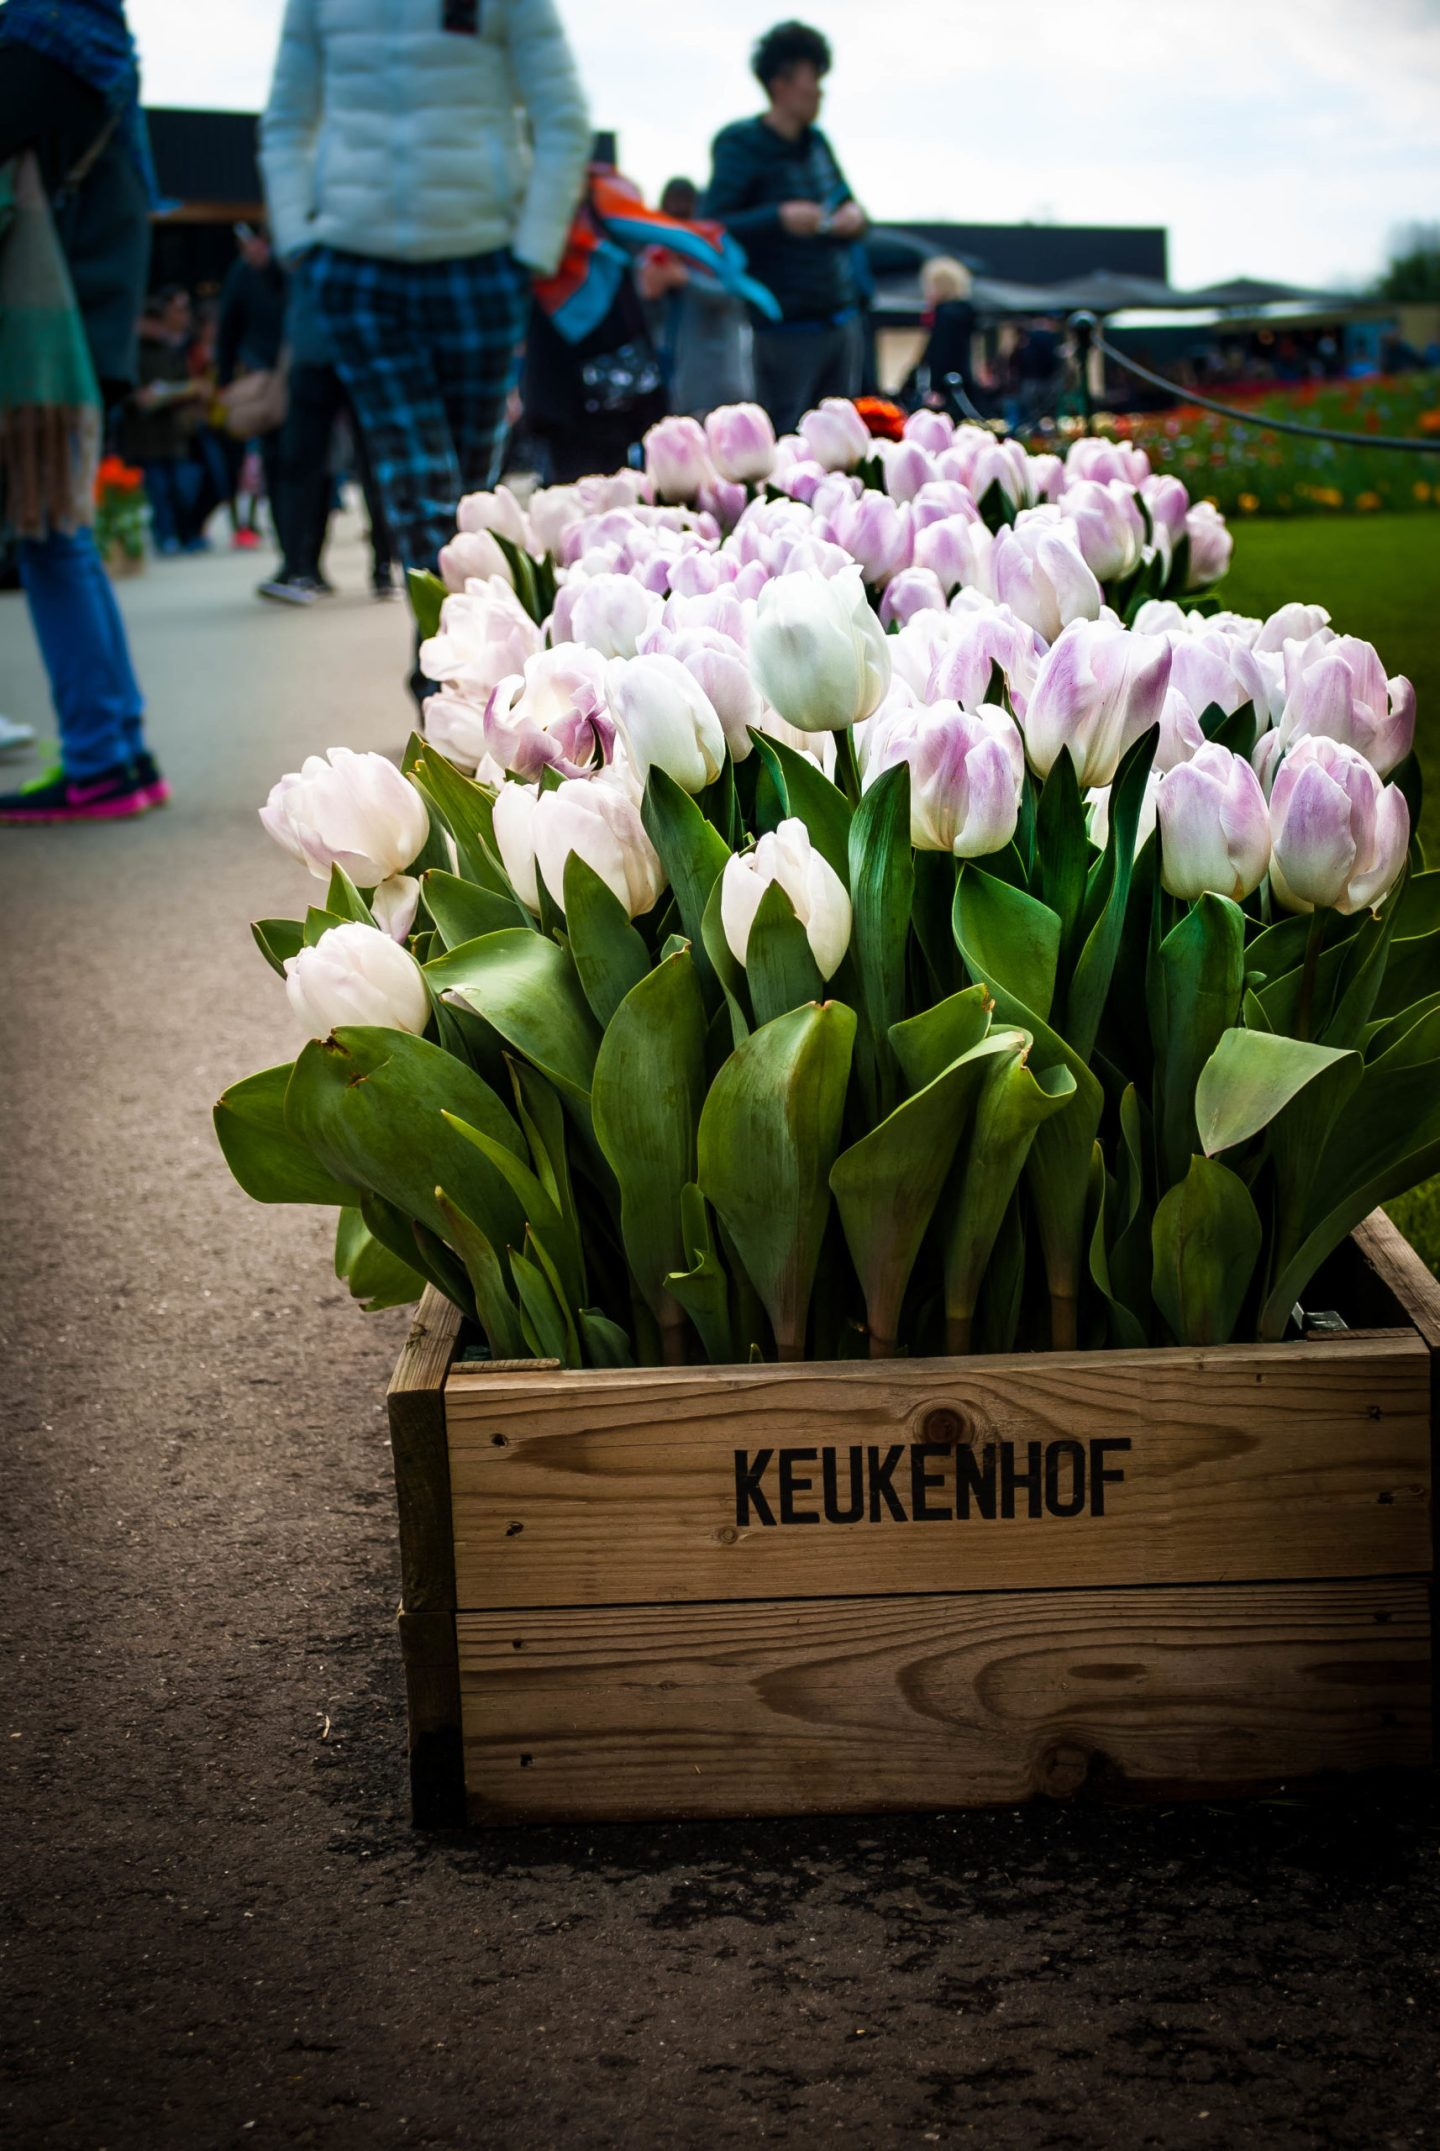 Visit the Keukenhof Tulips